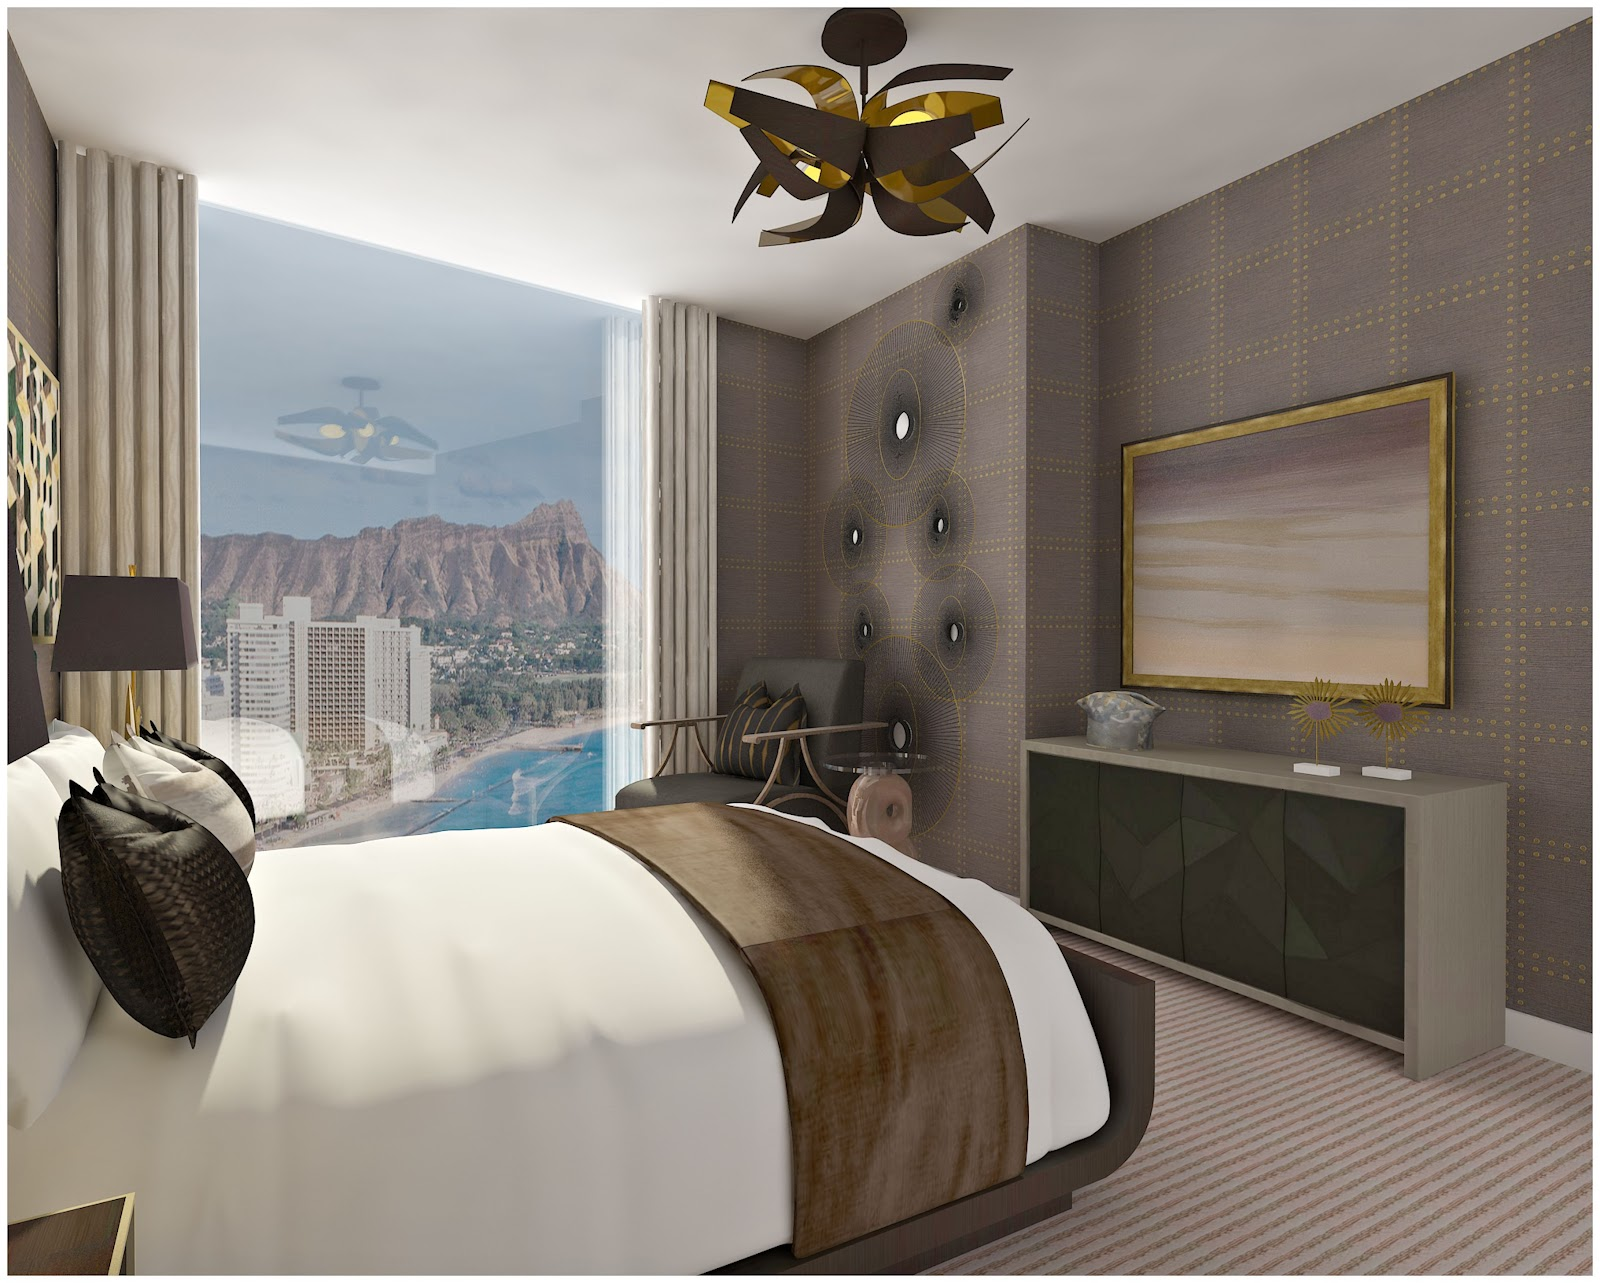 Interior Design Project -Anaha Tower Contemporary Remodel at CIH Design